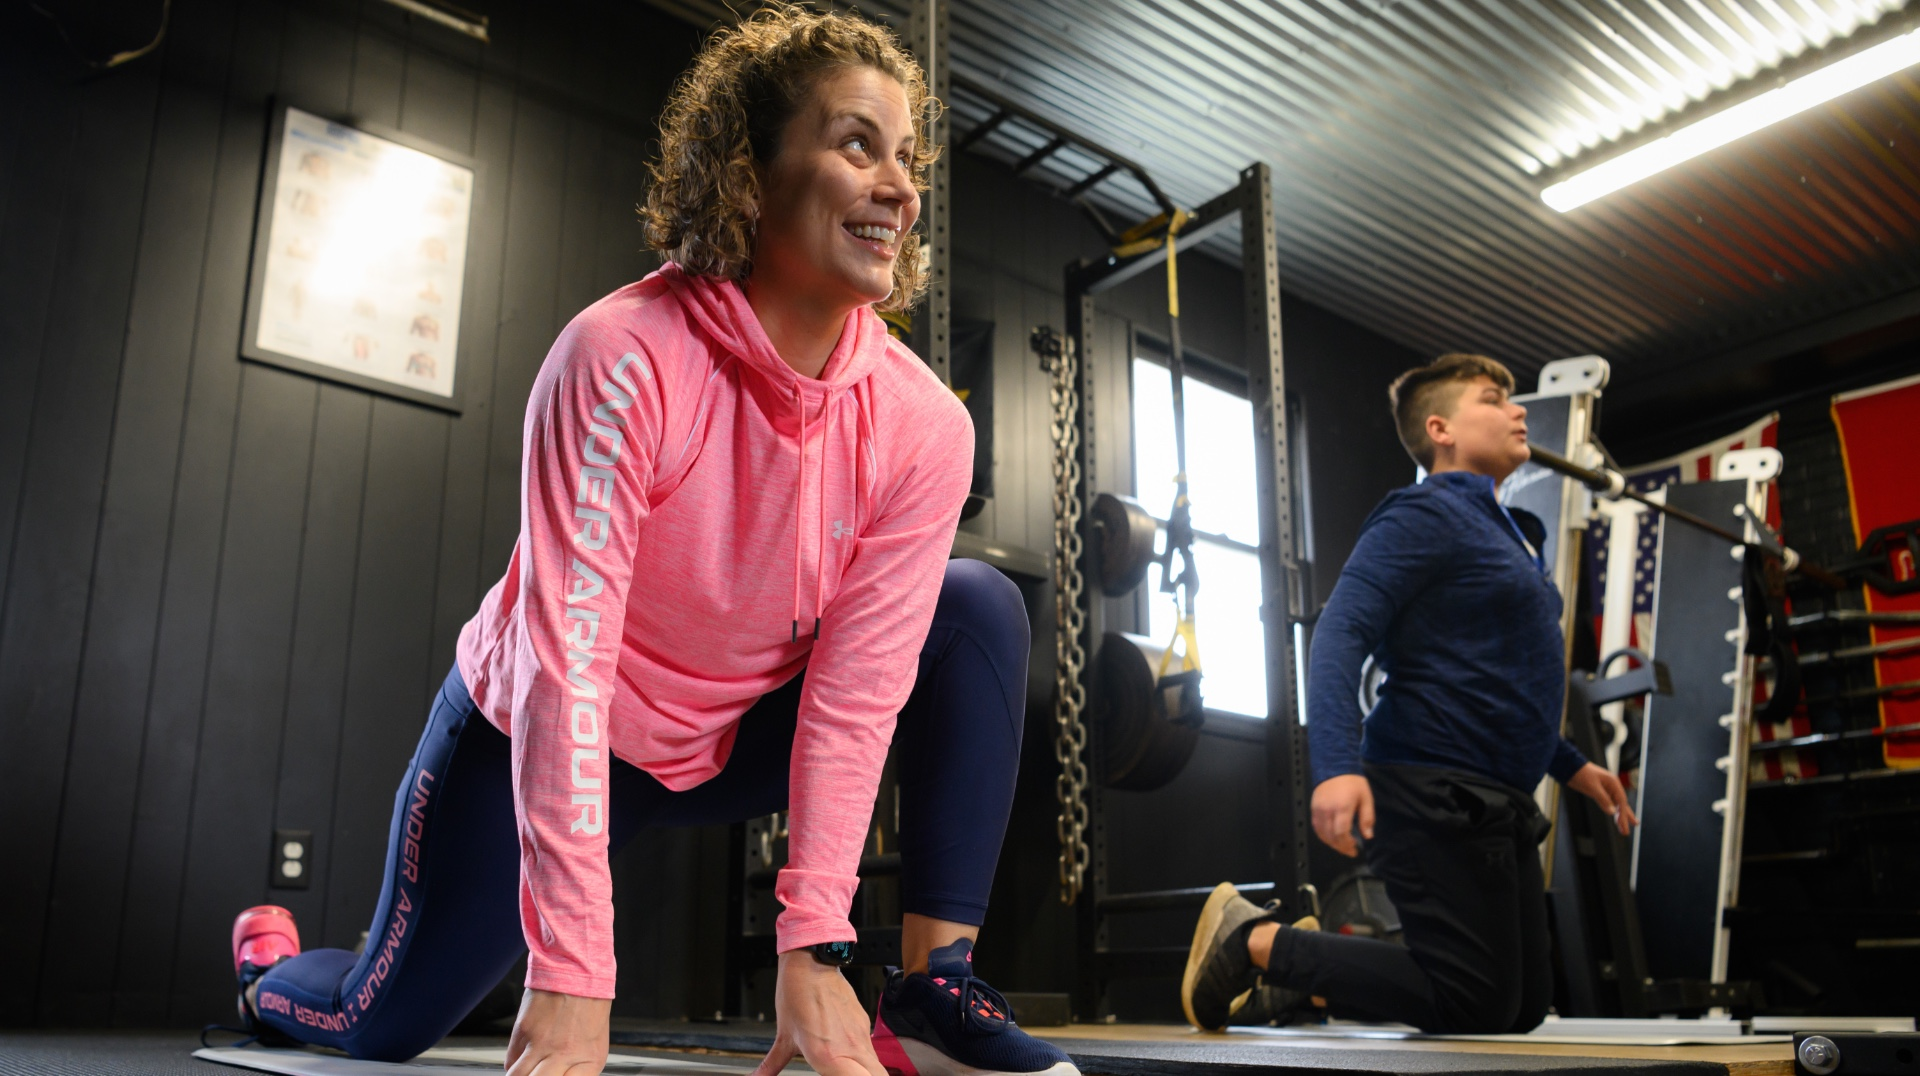 Geri smiles as she works out in the gym next to her son. She is doing a lunge and looking off-camera.